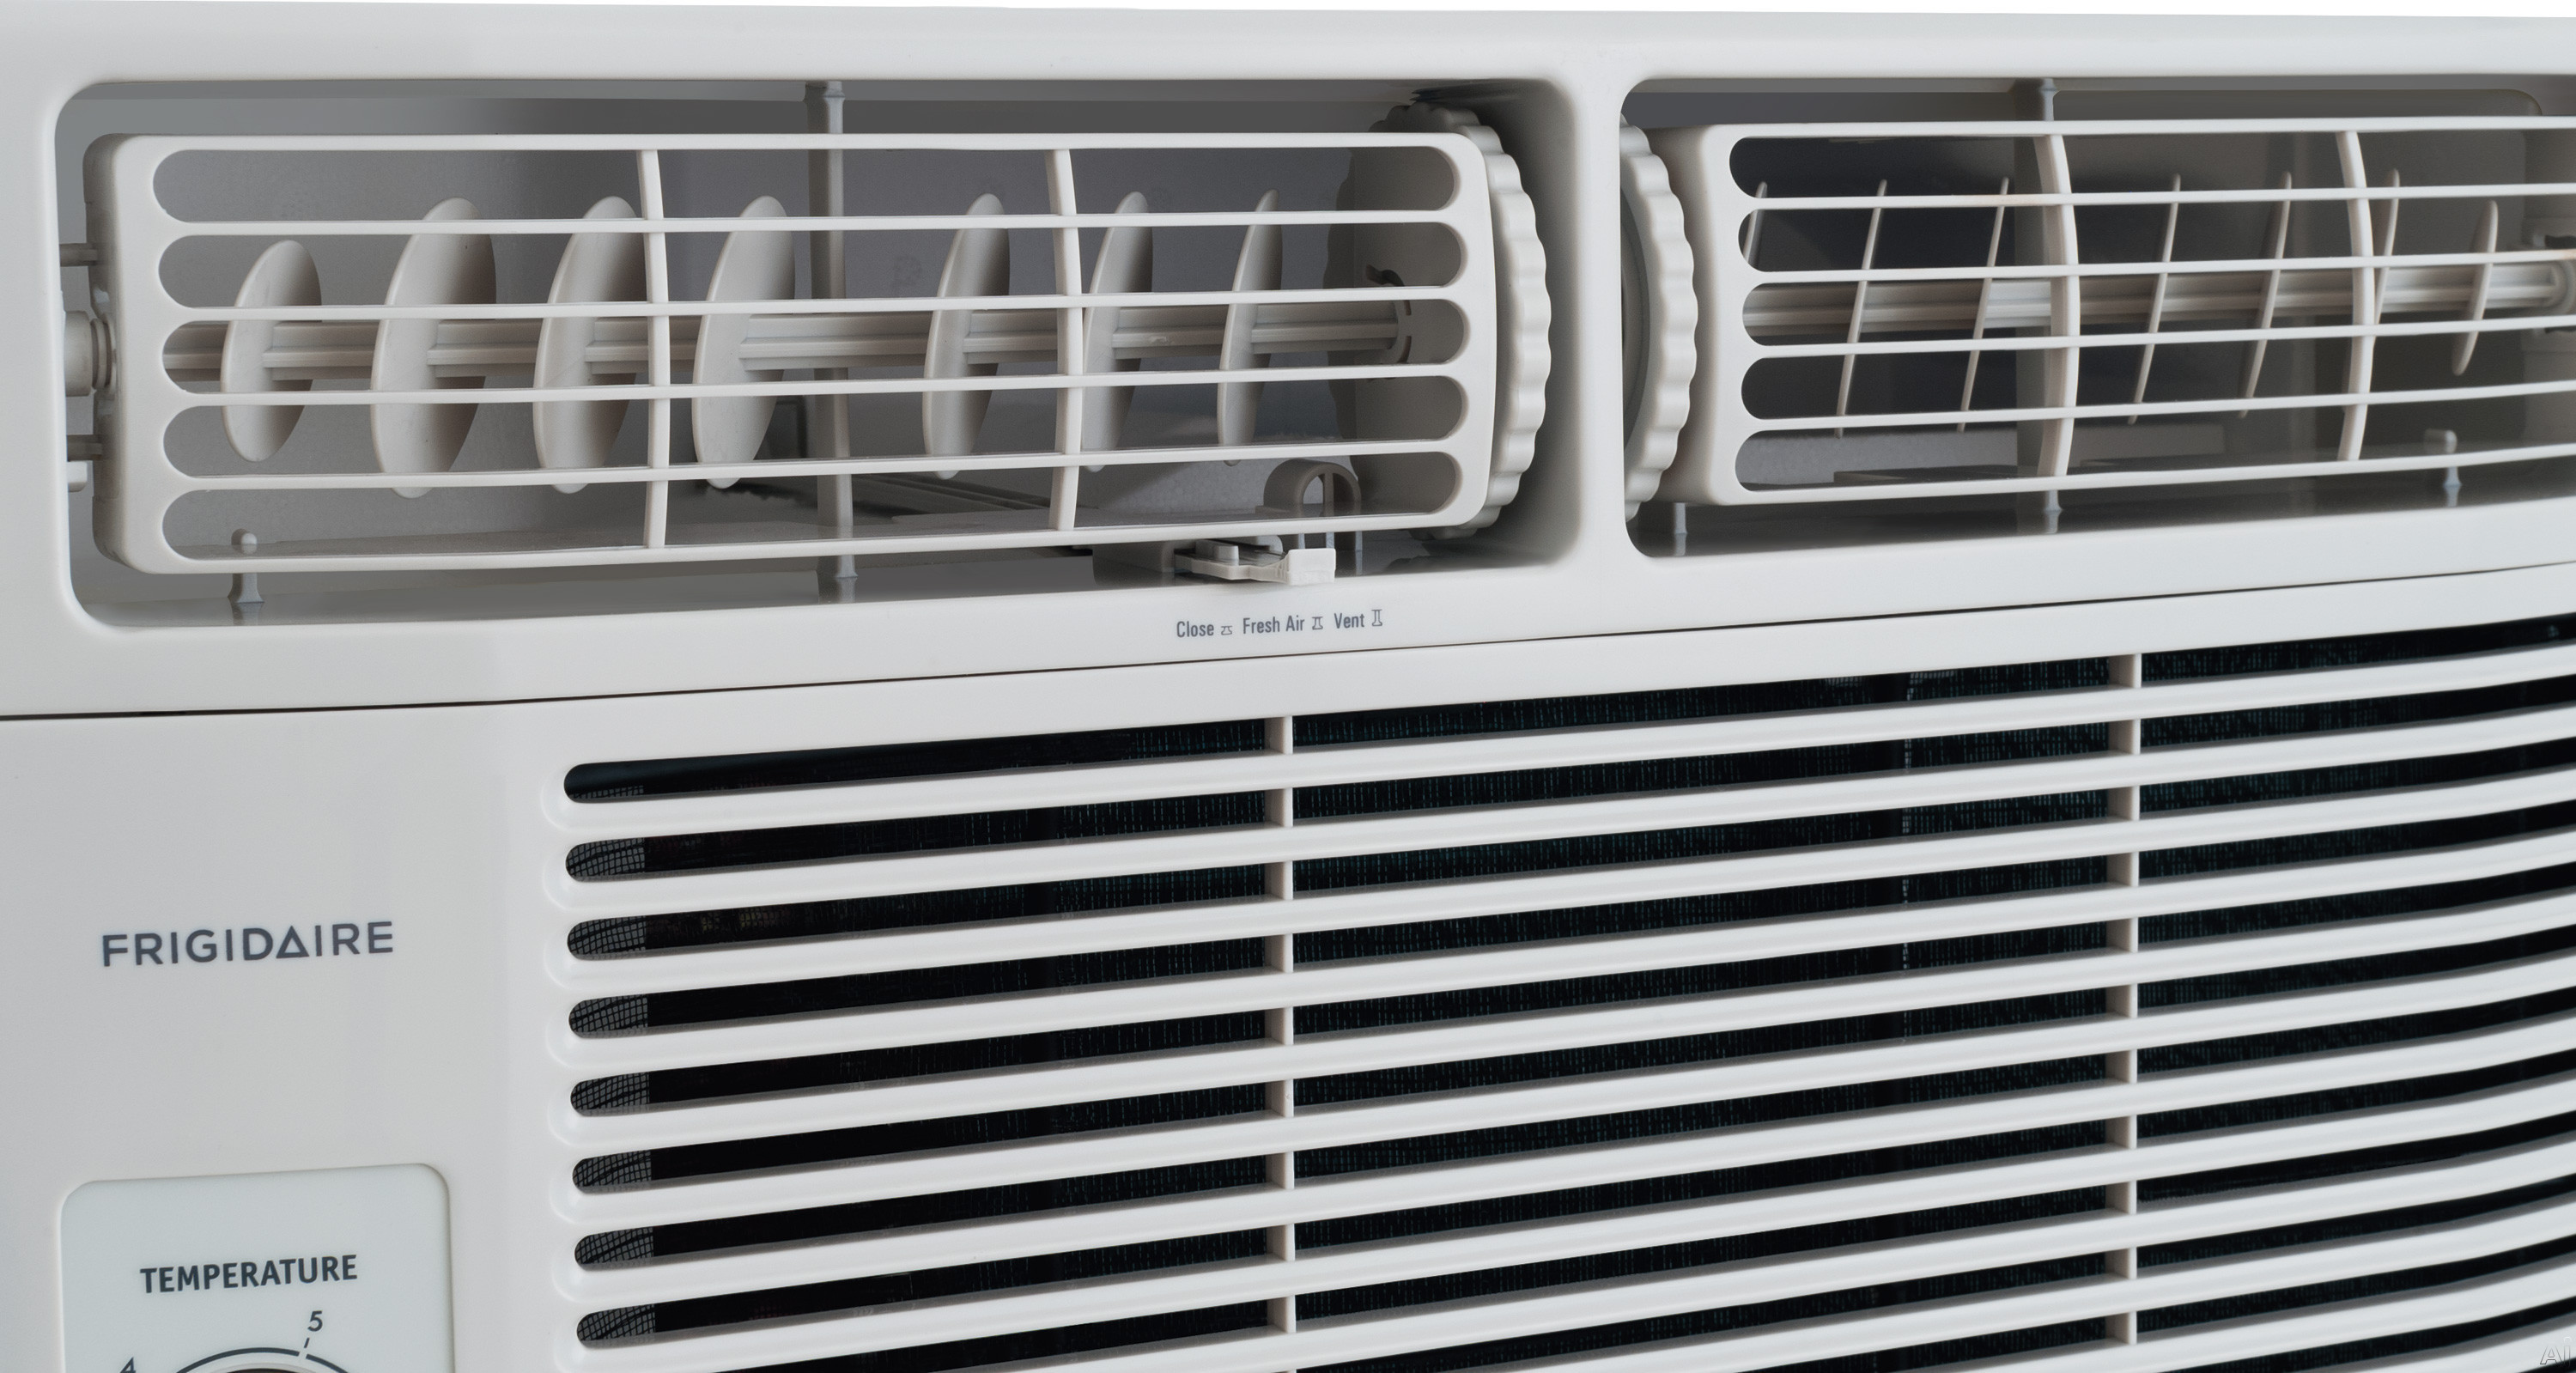 Home > Air Conditioners > Room Air Conditioners > FFRA1211R1 #57514E